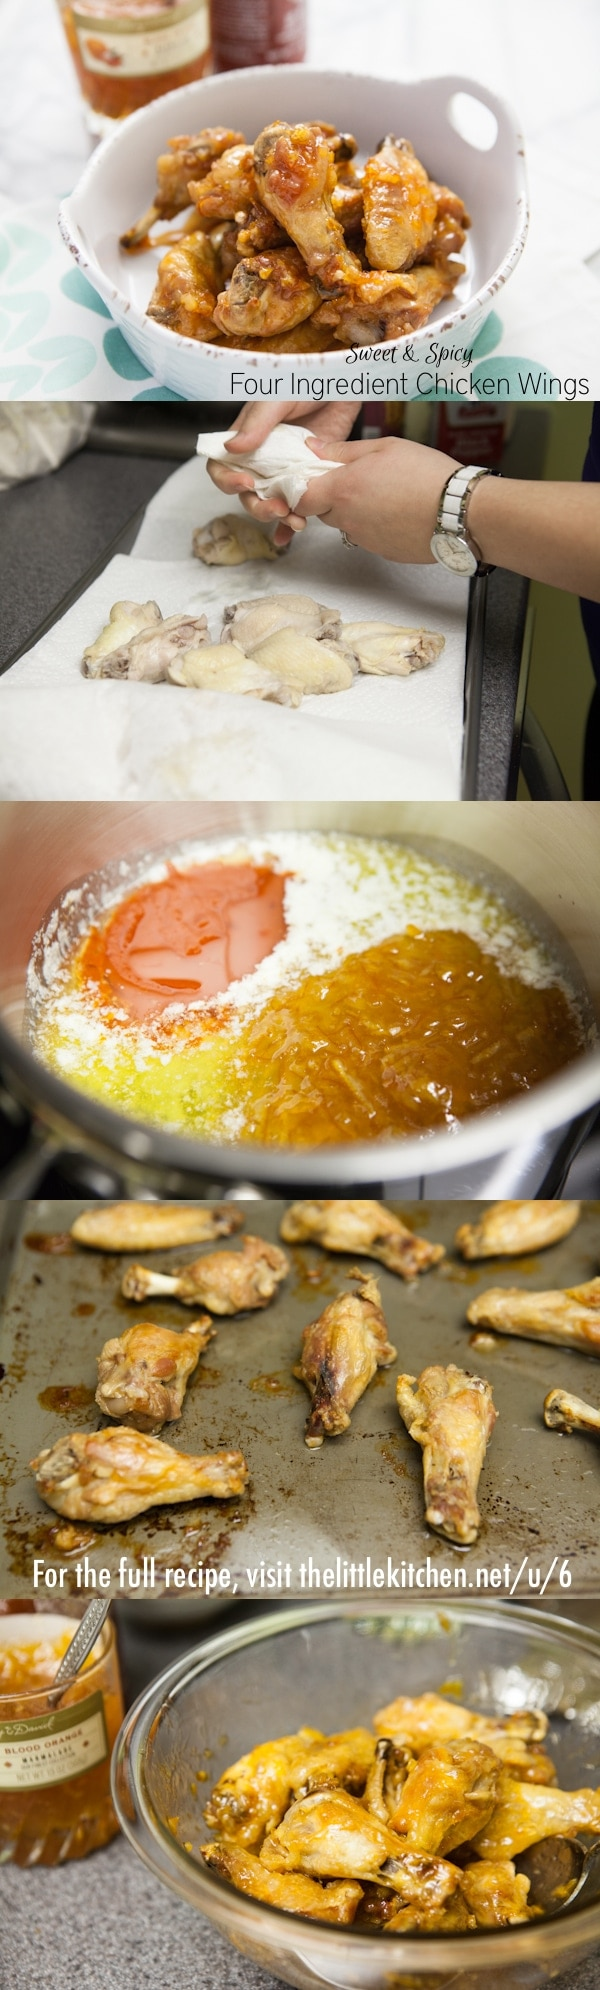 {so easy and they taste amazing!} Sweet and Spicy Four Ingredient Chicken Wings from thelittlekitchen.net